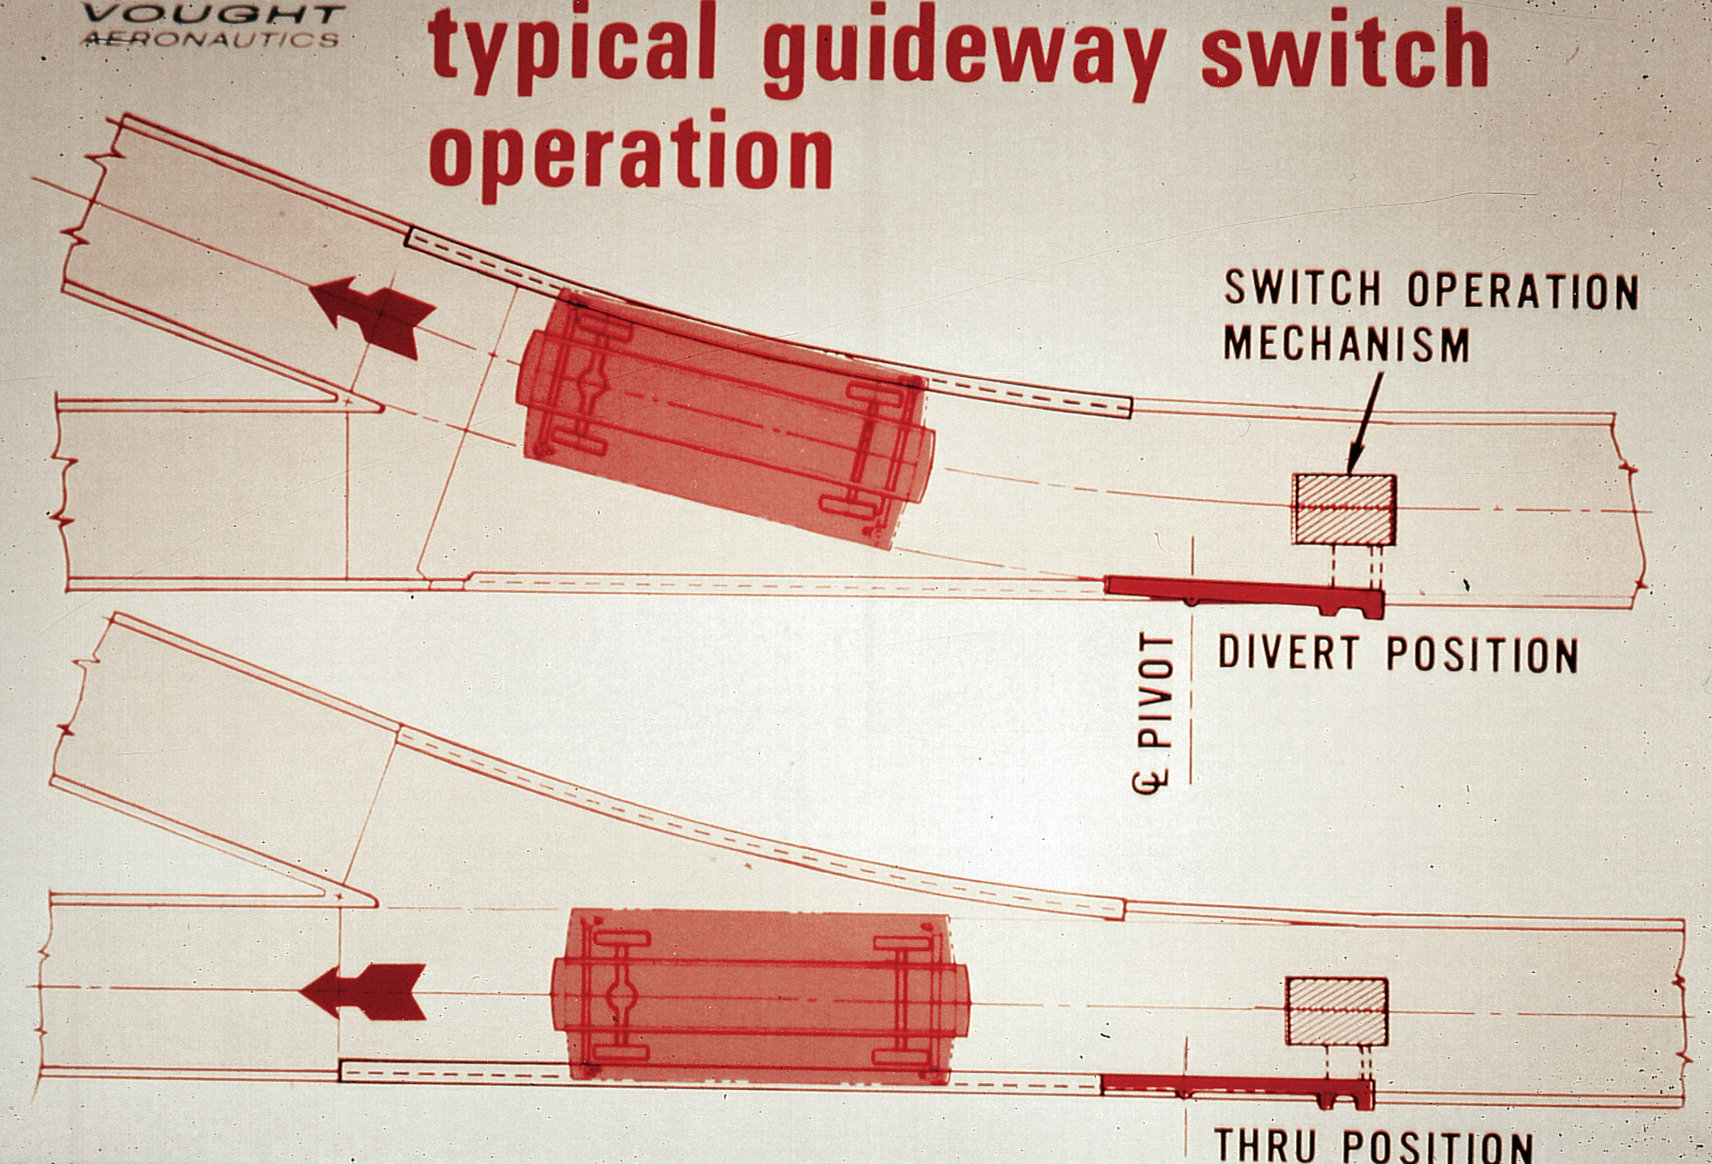 Filetypical Guideway Switch Wikimedia Commons January 2013 Schematic Diagram Current 2032 5 Thumbnail For